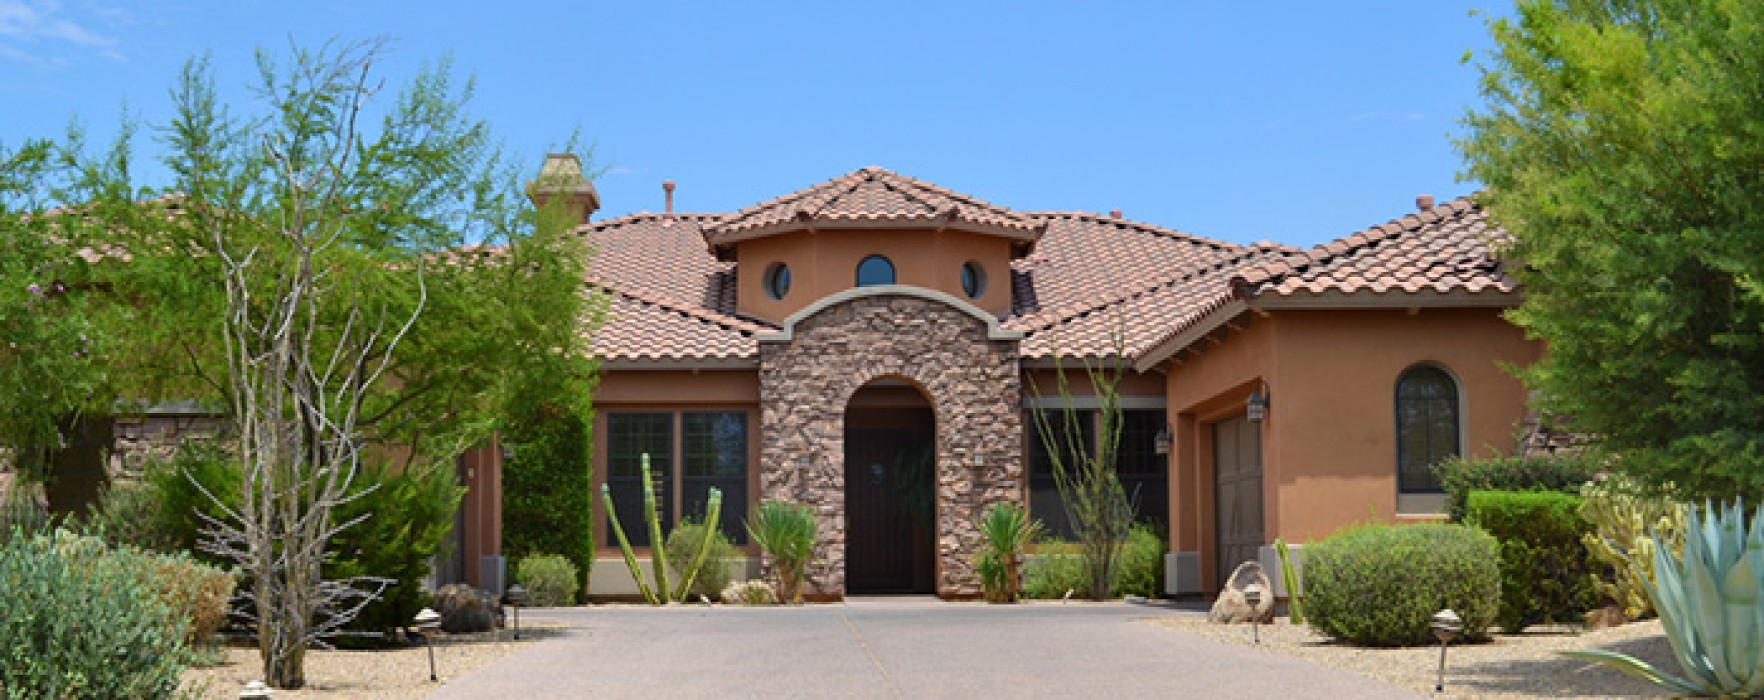 New Home For Sale In Sedona Az